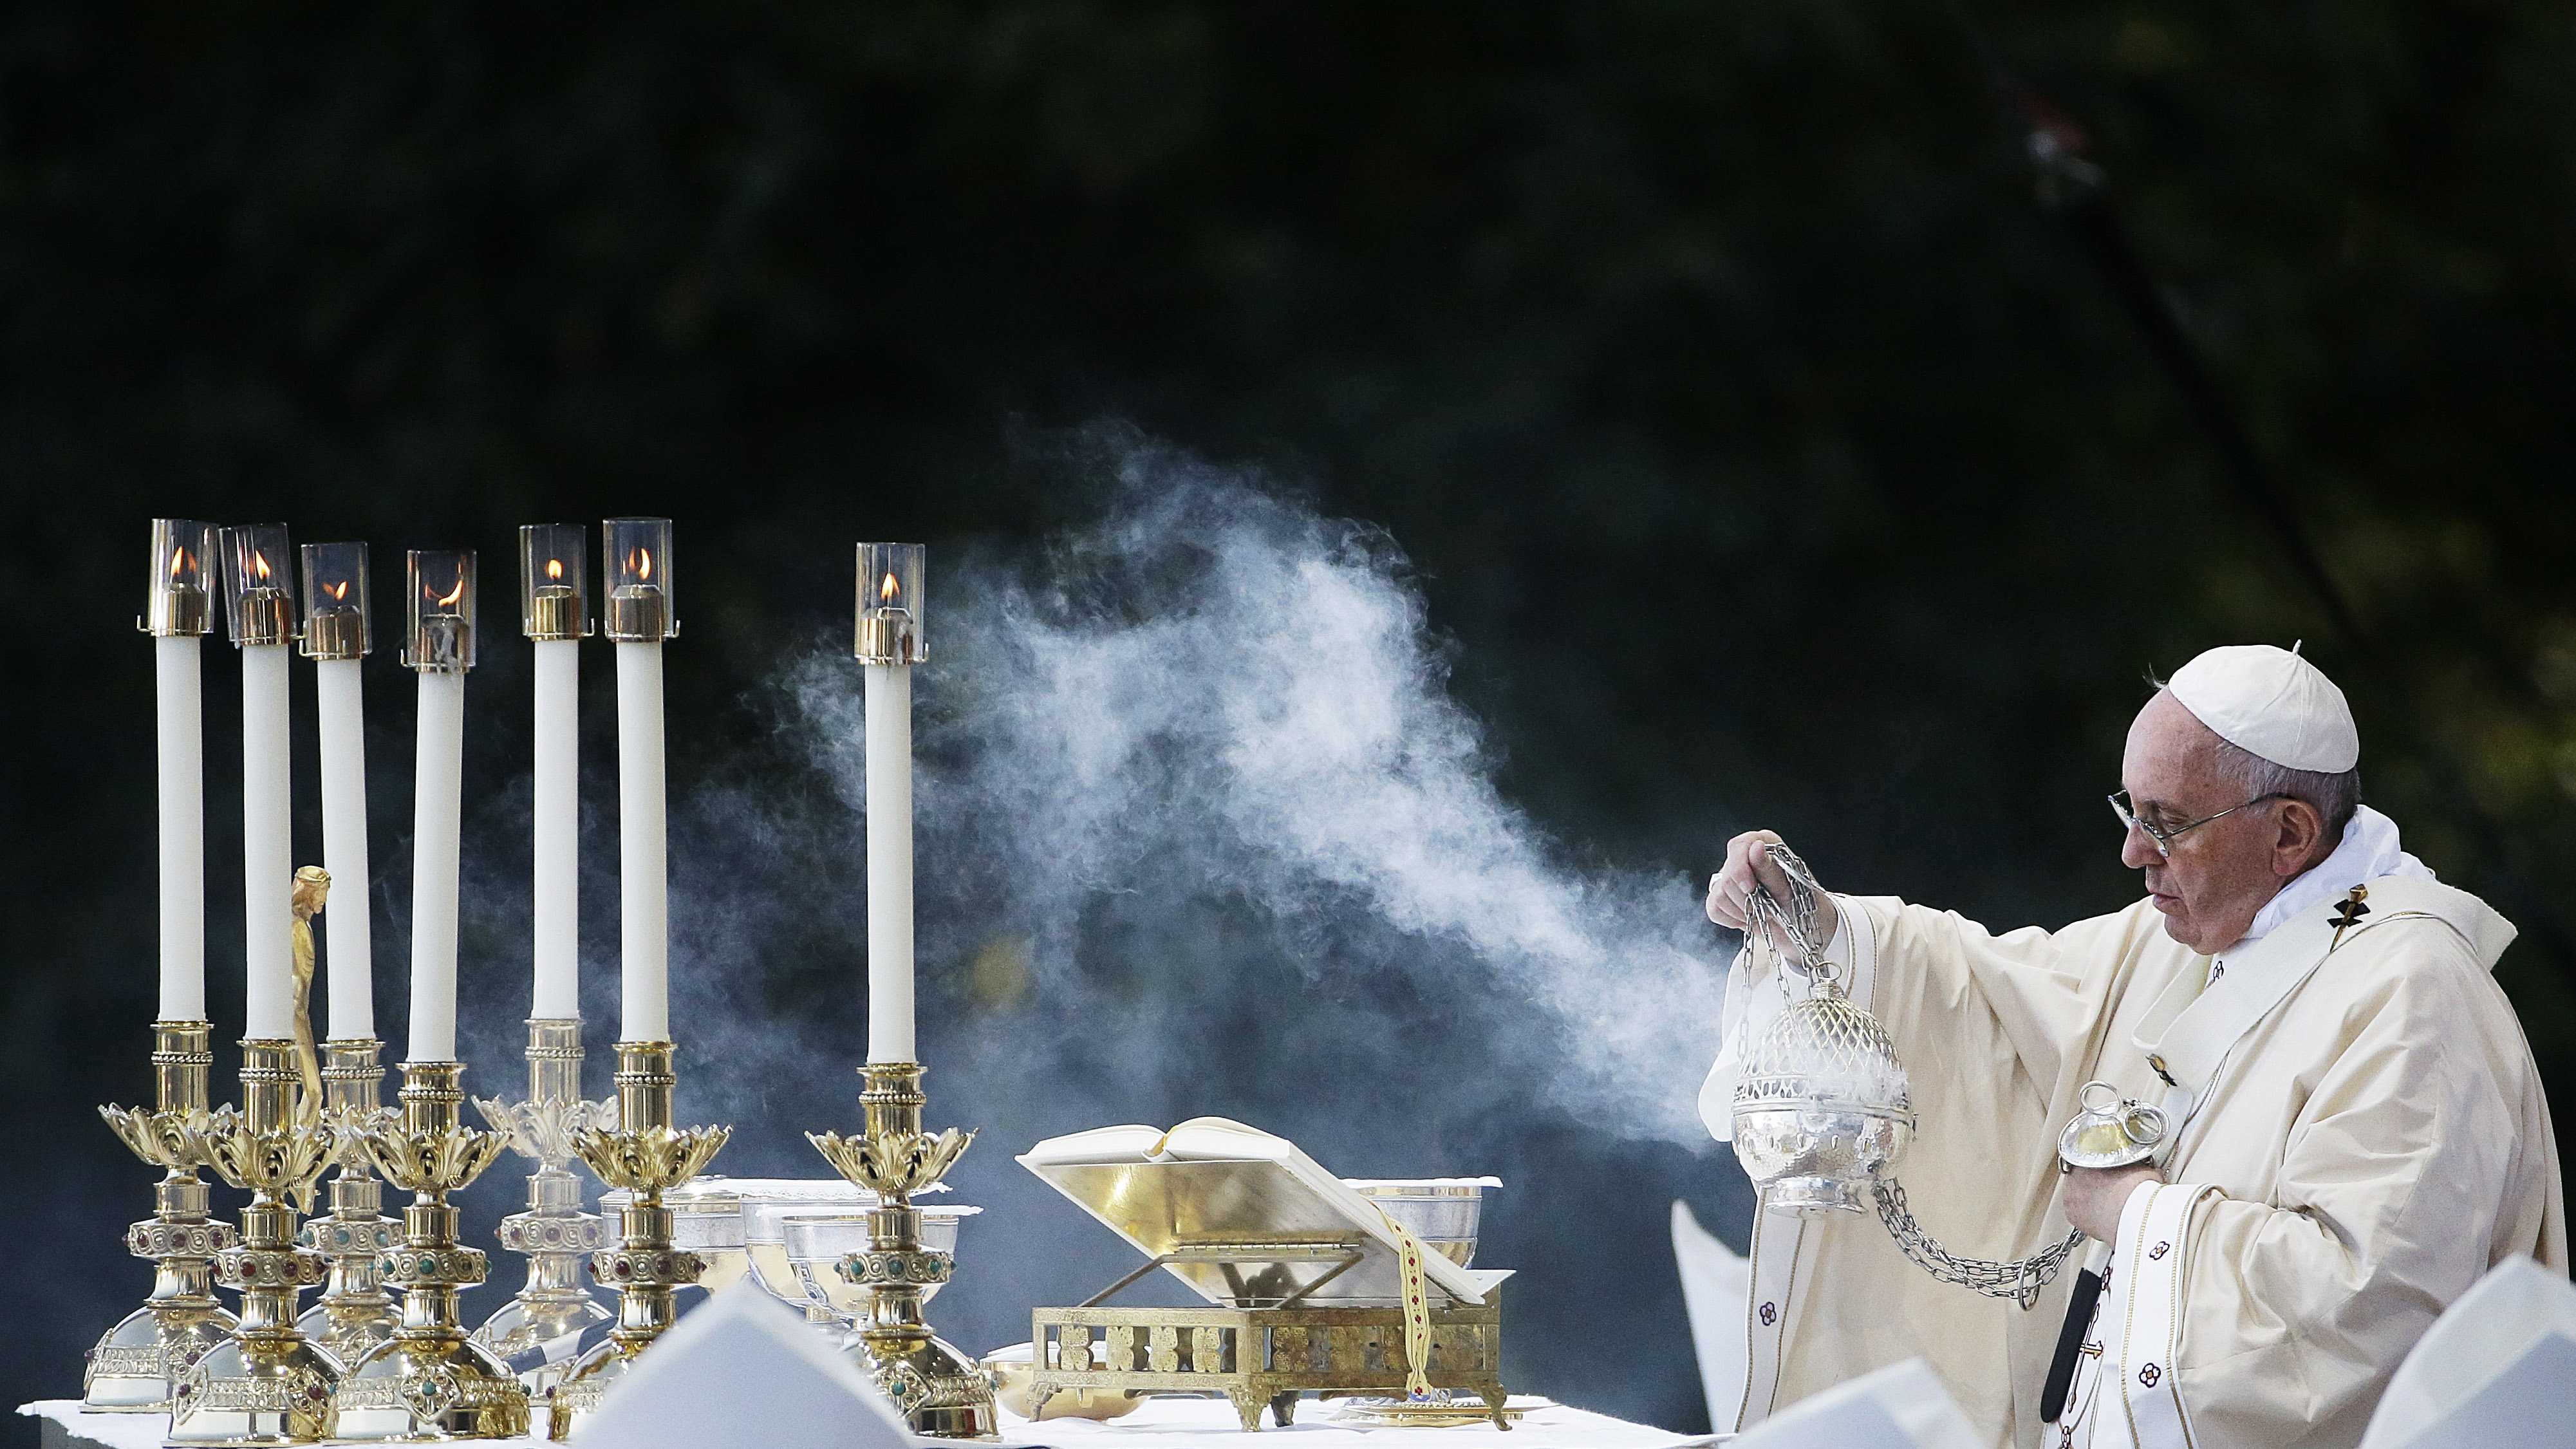 Pope Francis conducts Mass outside the Basilica of the National Shrine of the Immaculate Conception Wednesday, Sept. 23, 2015, in Washington. (AP Photo/David Goldman)